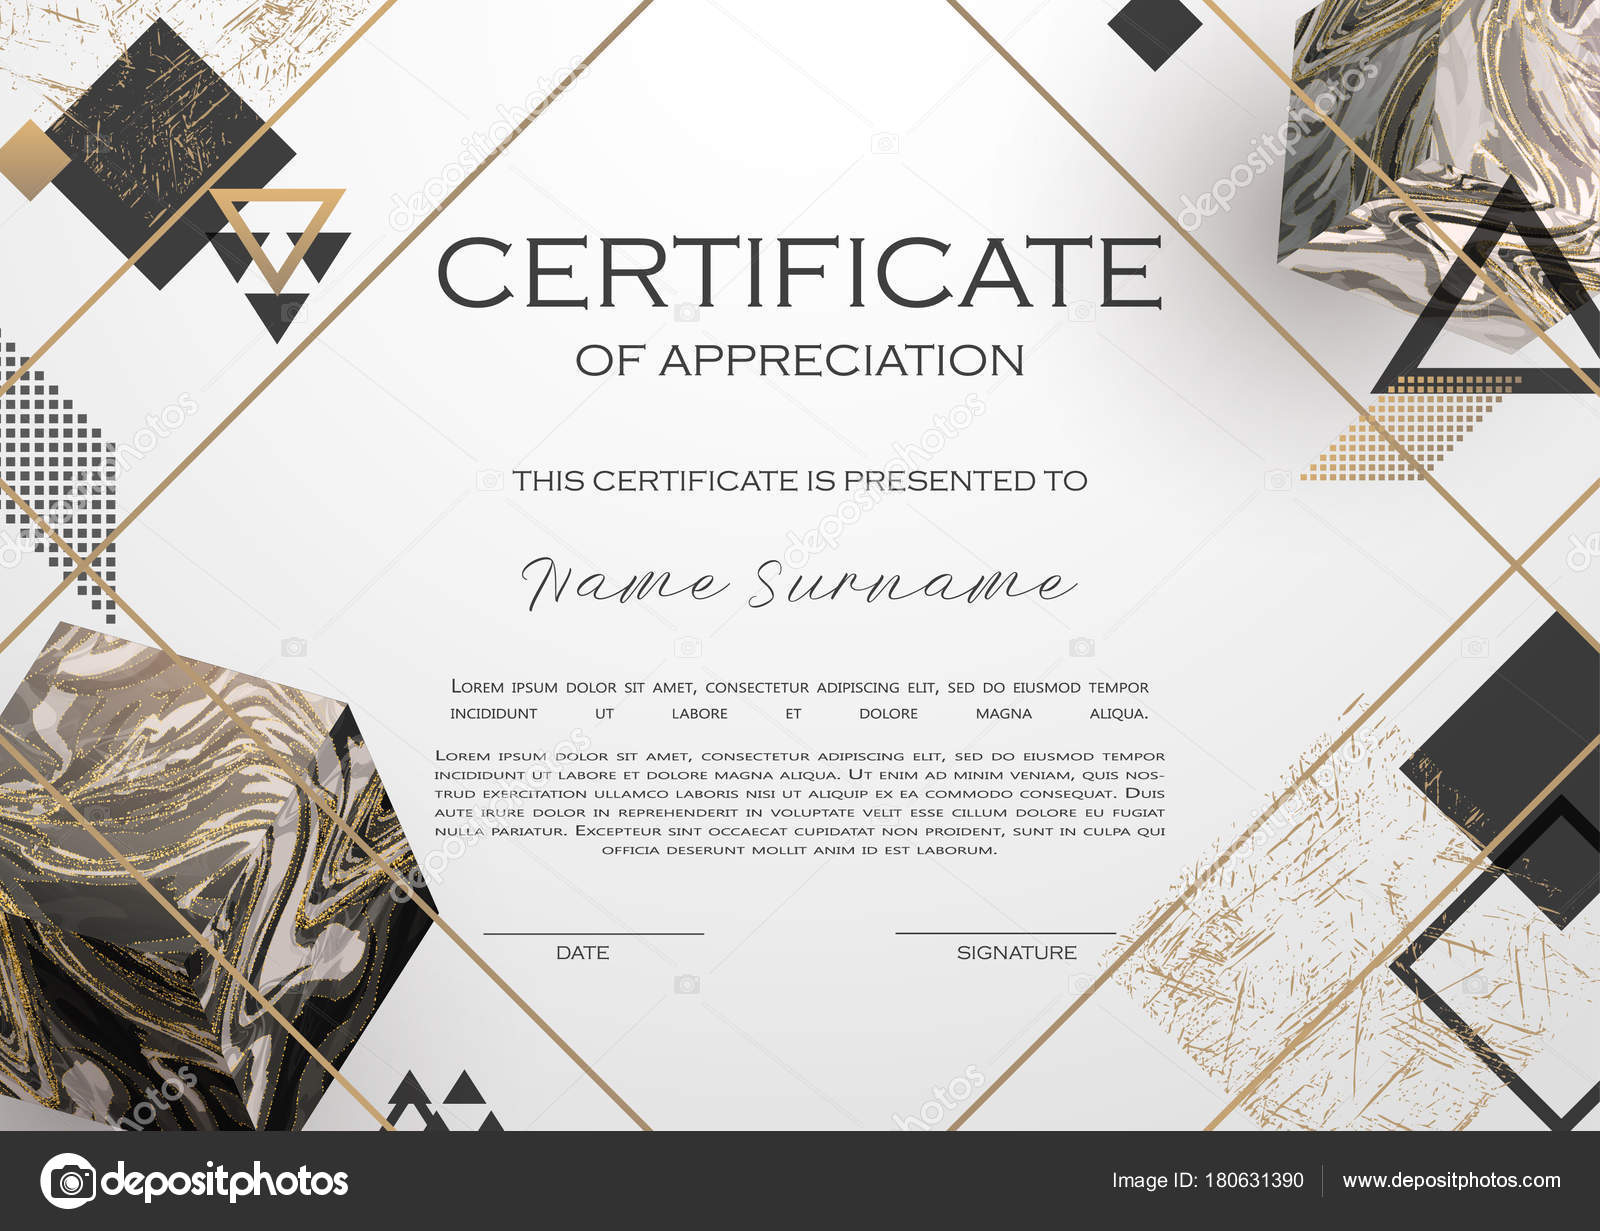 Qualification certificate appreciation design elegant luxury modern qualification certificate of appreciation design elegant luxury and modern pattern best quality award template with white and golden tapes shapes yelopaper Gallery